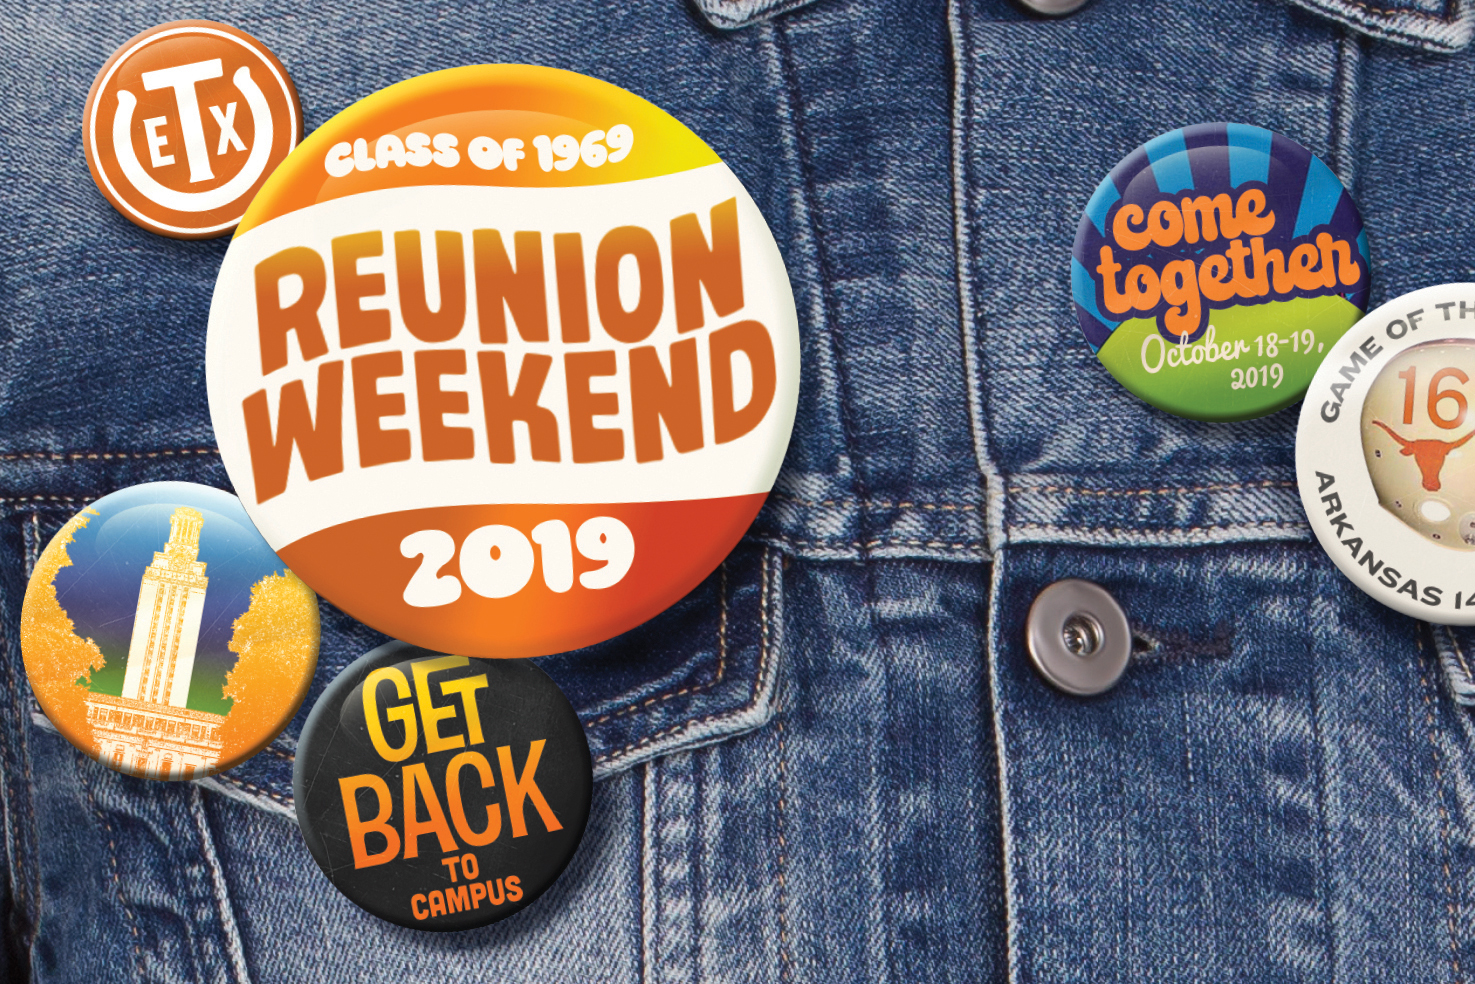 2019 Reunion Weekend